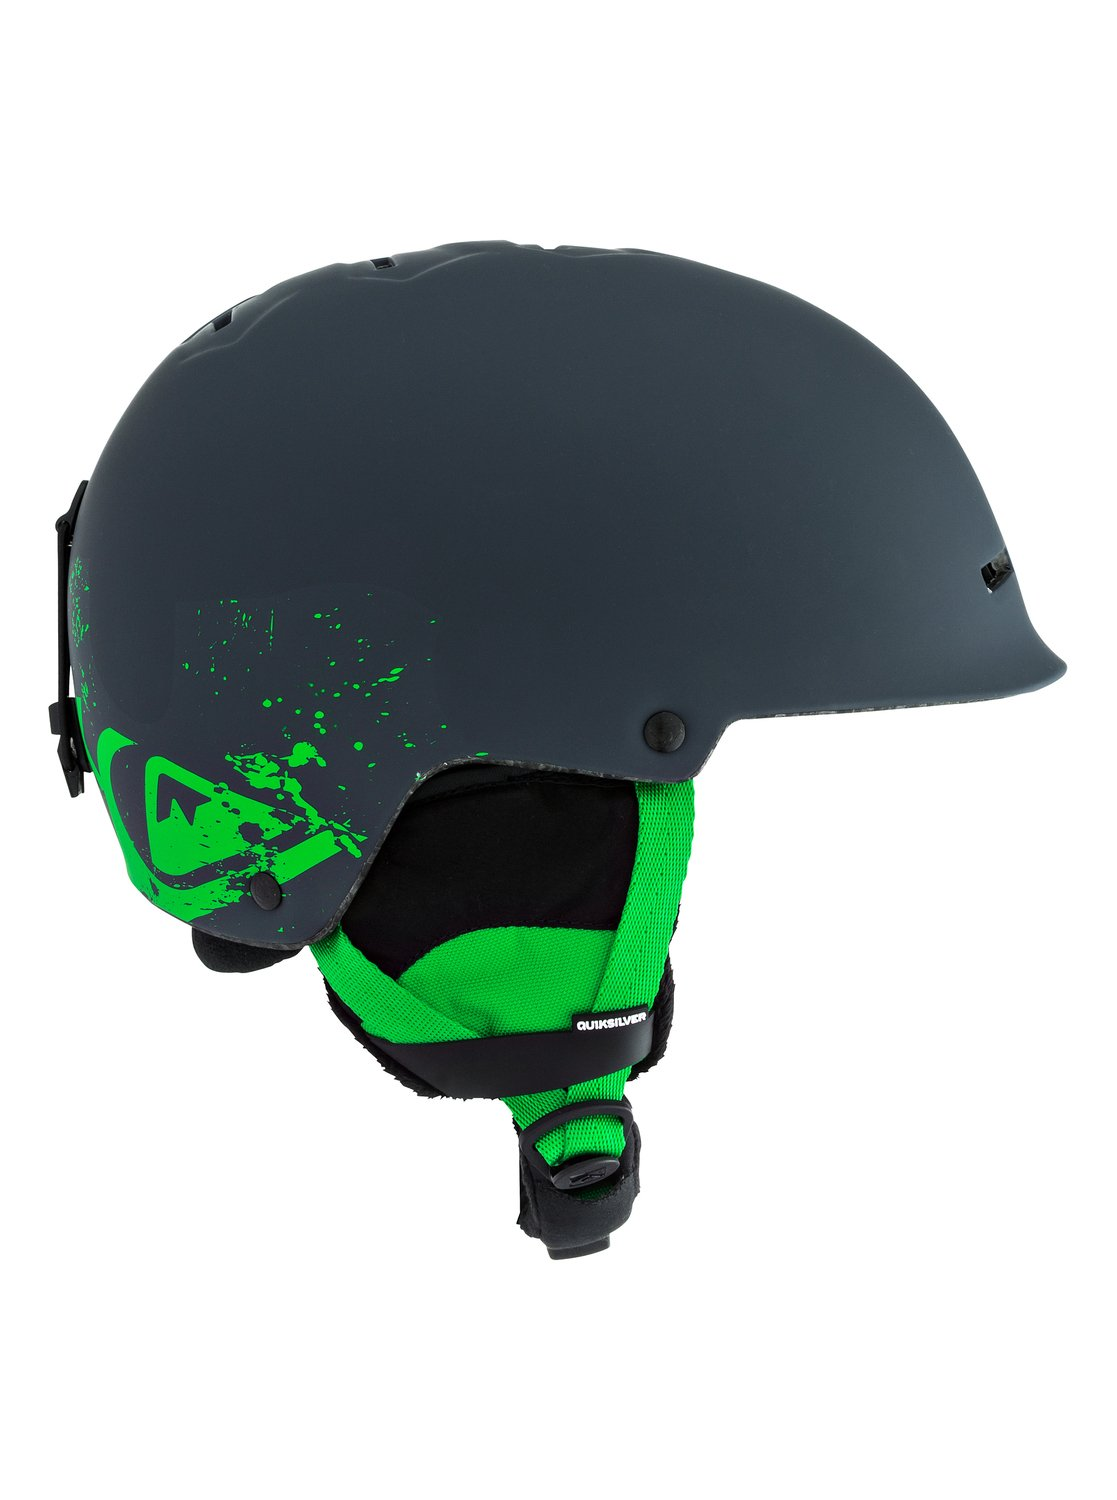 how to choose a snowboard helmet